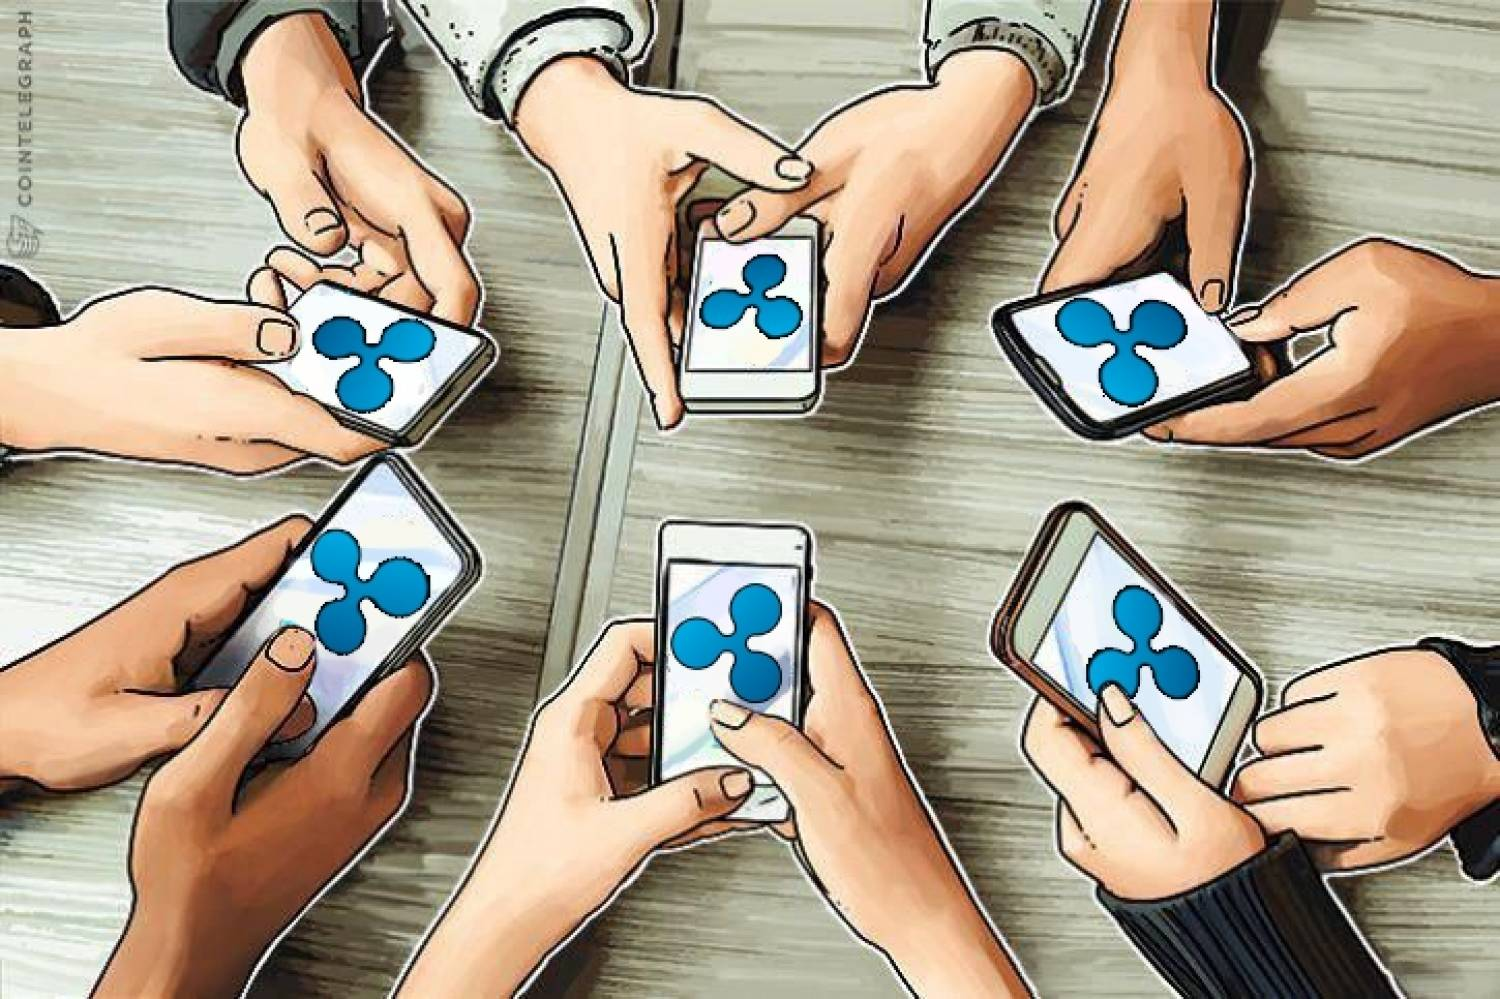 People with Ripple wallets